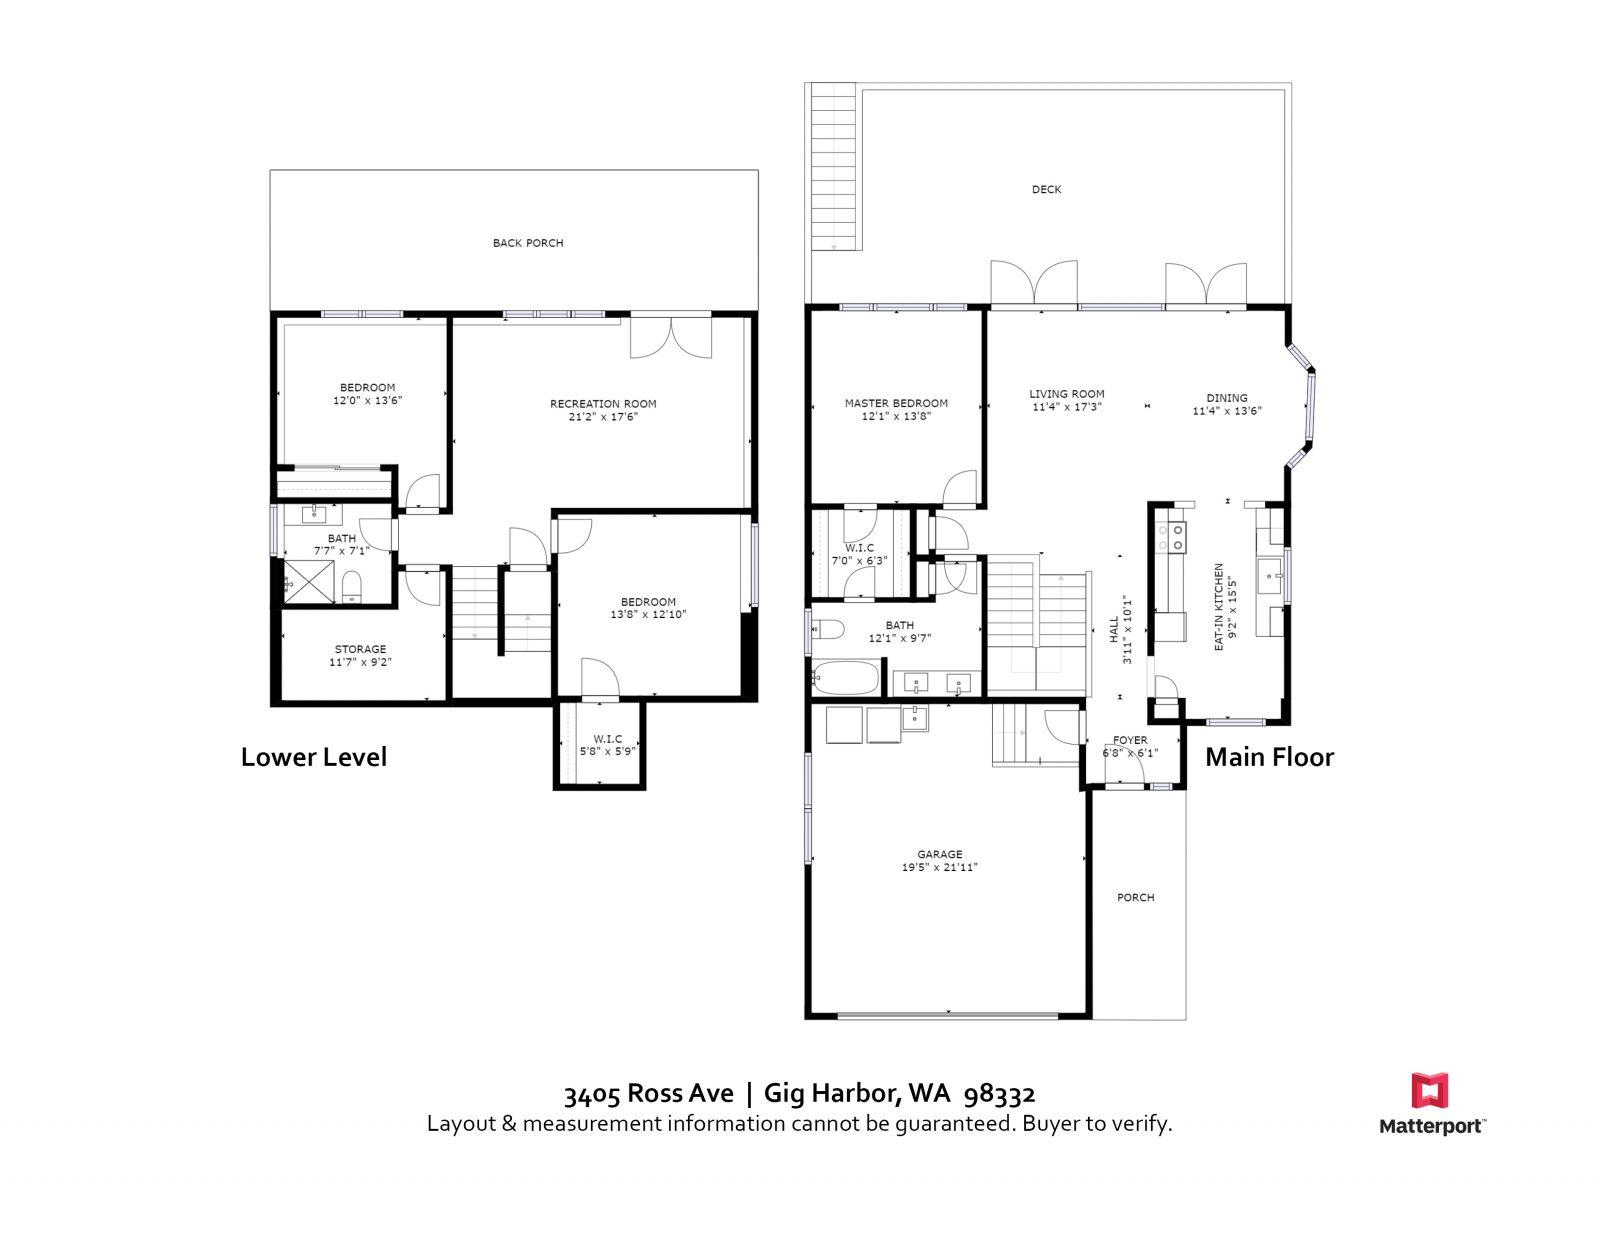 FLOOR PLAN 3405 Ross Ave, Gig Harbor WA